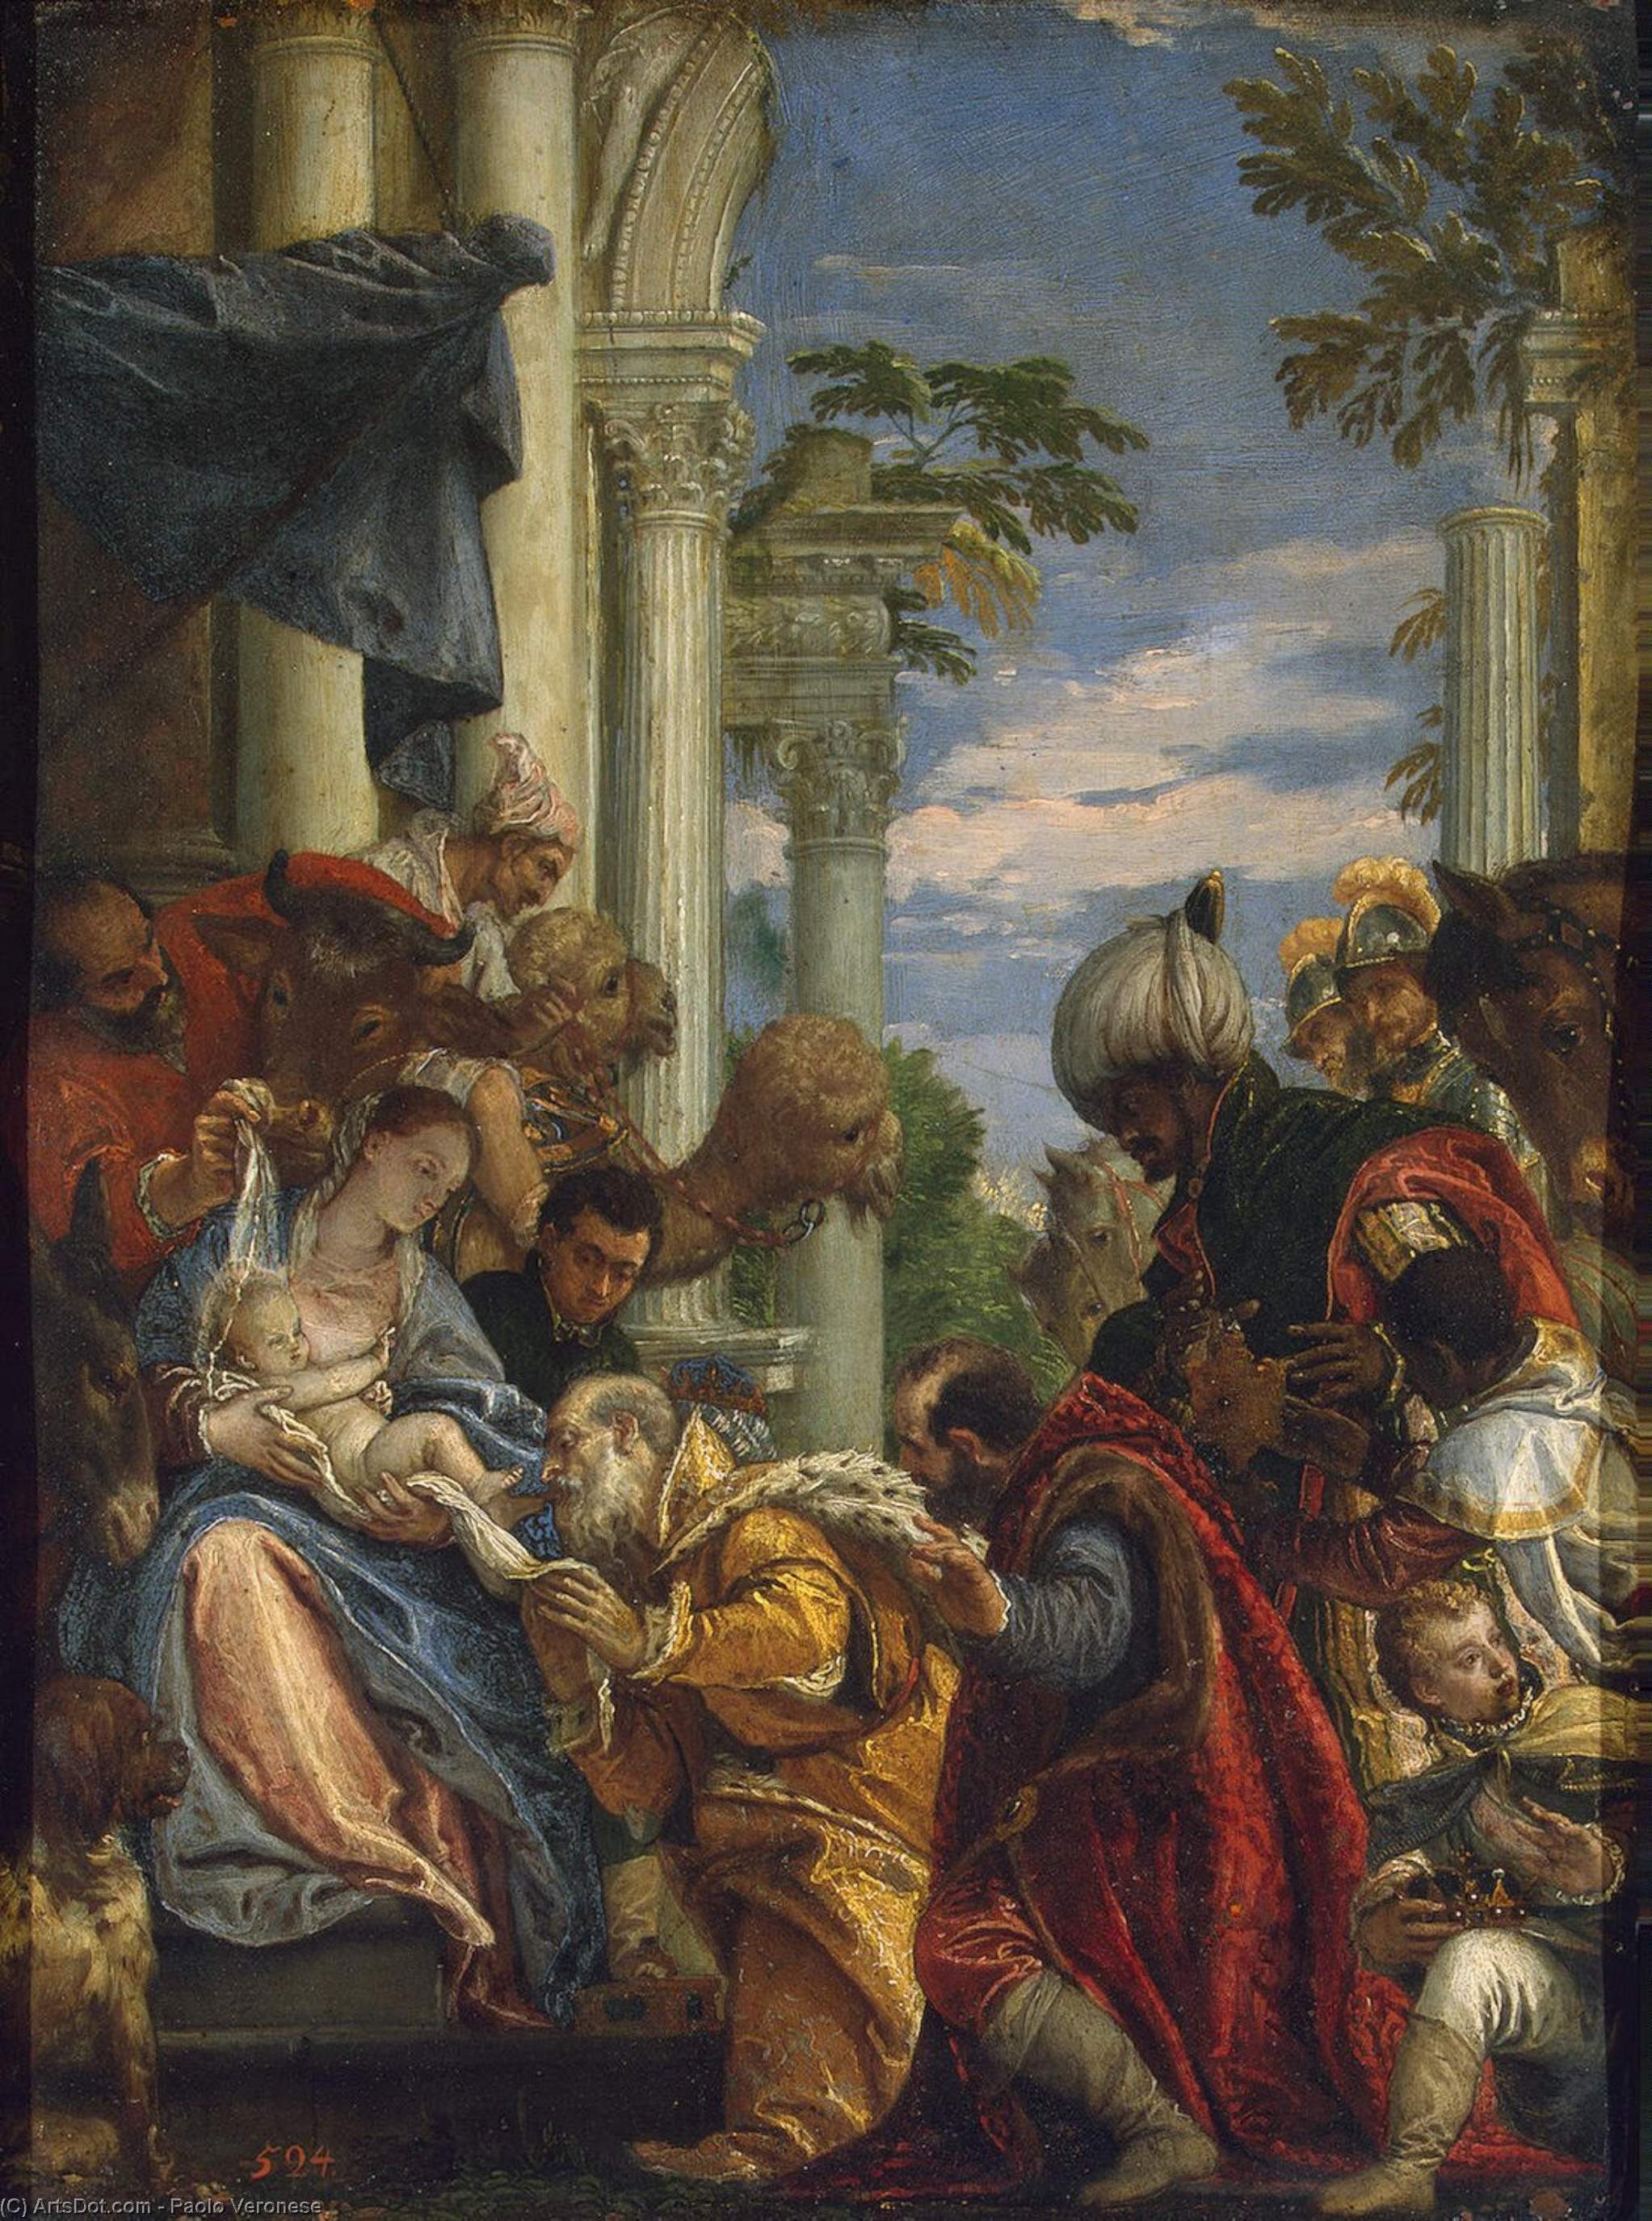 Wikioo.org - The Encyclopedia of Fine Arts - Painting, Artwork by Paolo Veronese - Adoration of the Magi